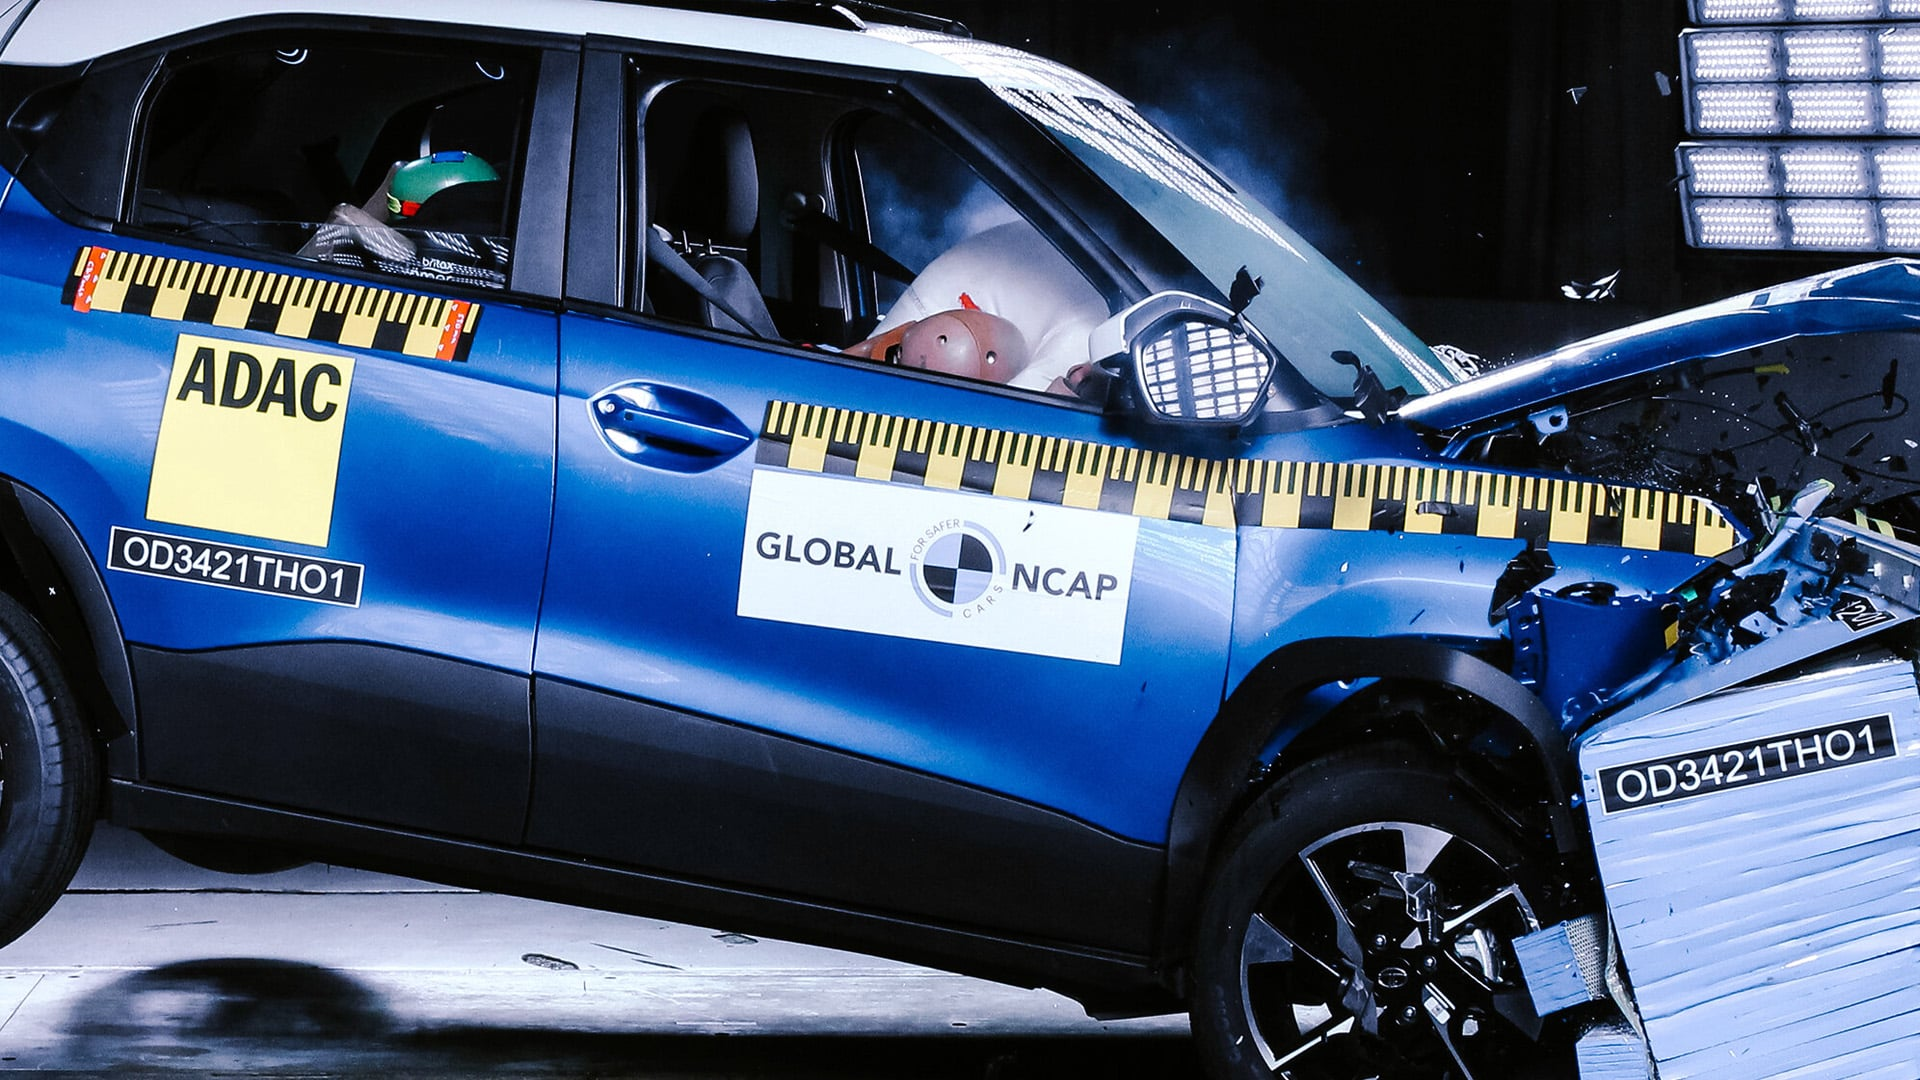 Tata Punch is now India's safest car with 5-star Global NCAP rating